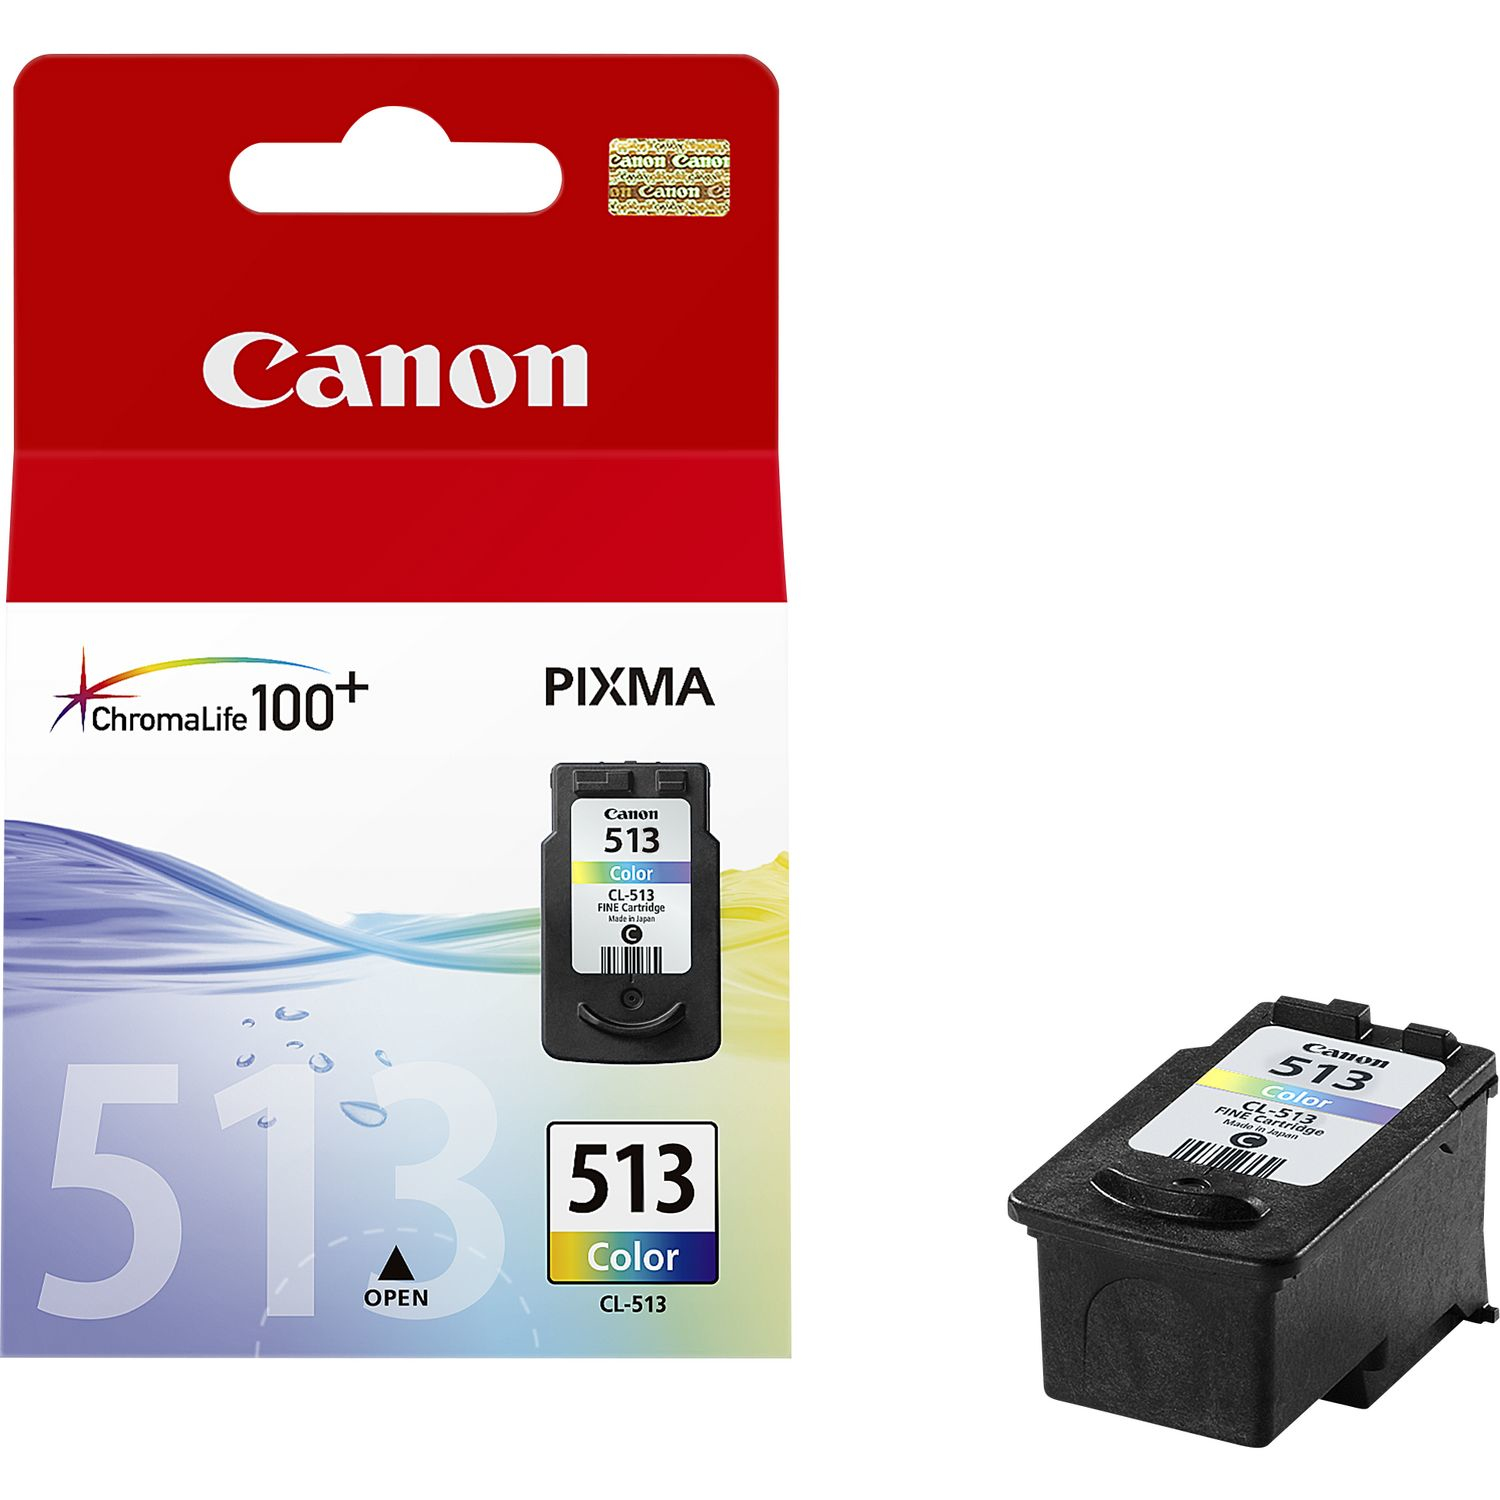 BB Canon Reman 2971B001AA (CL-513) Col Ink 2971B001 - rem01